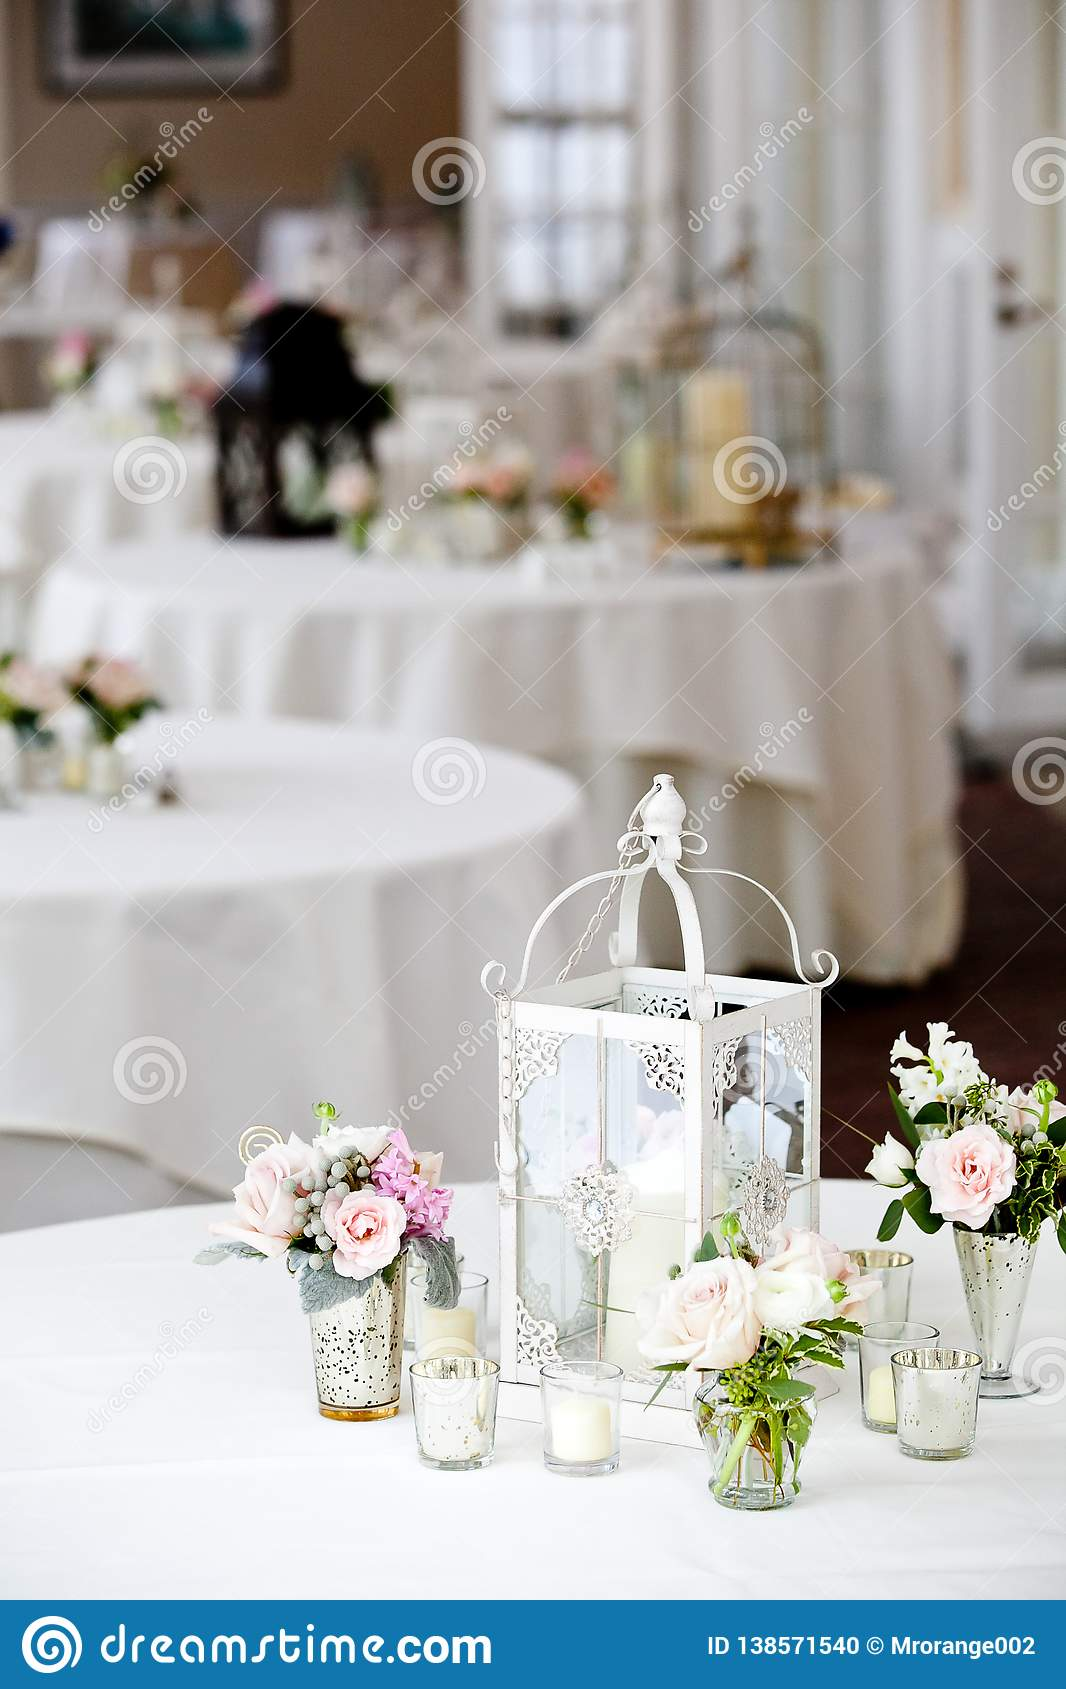 Pink And White Table Decorations  from thumbs.dreamstime.com